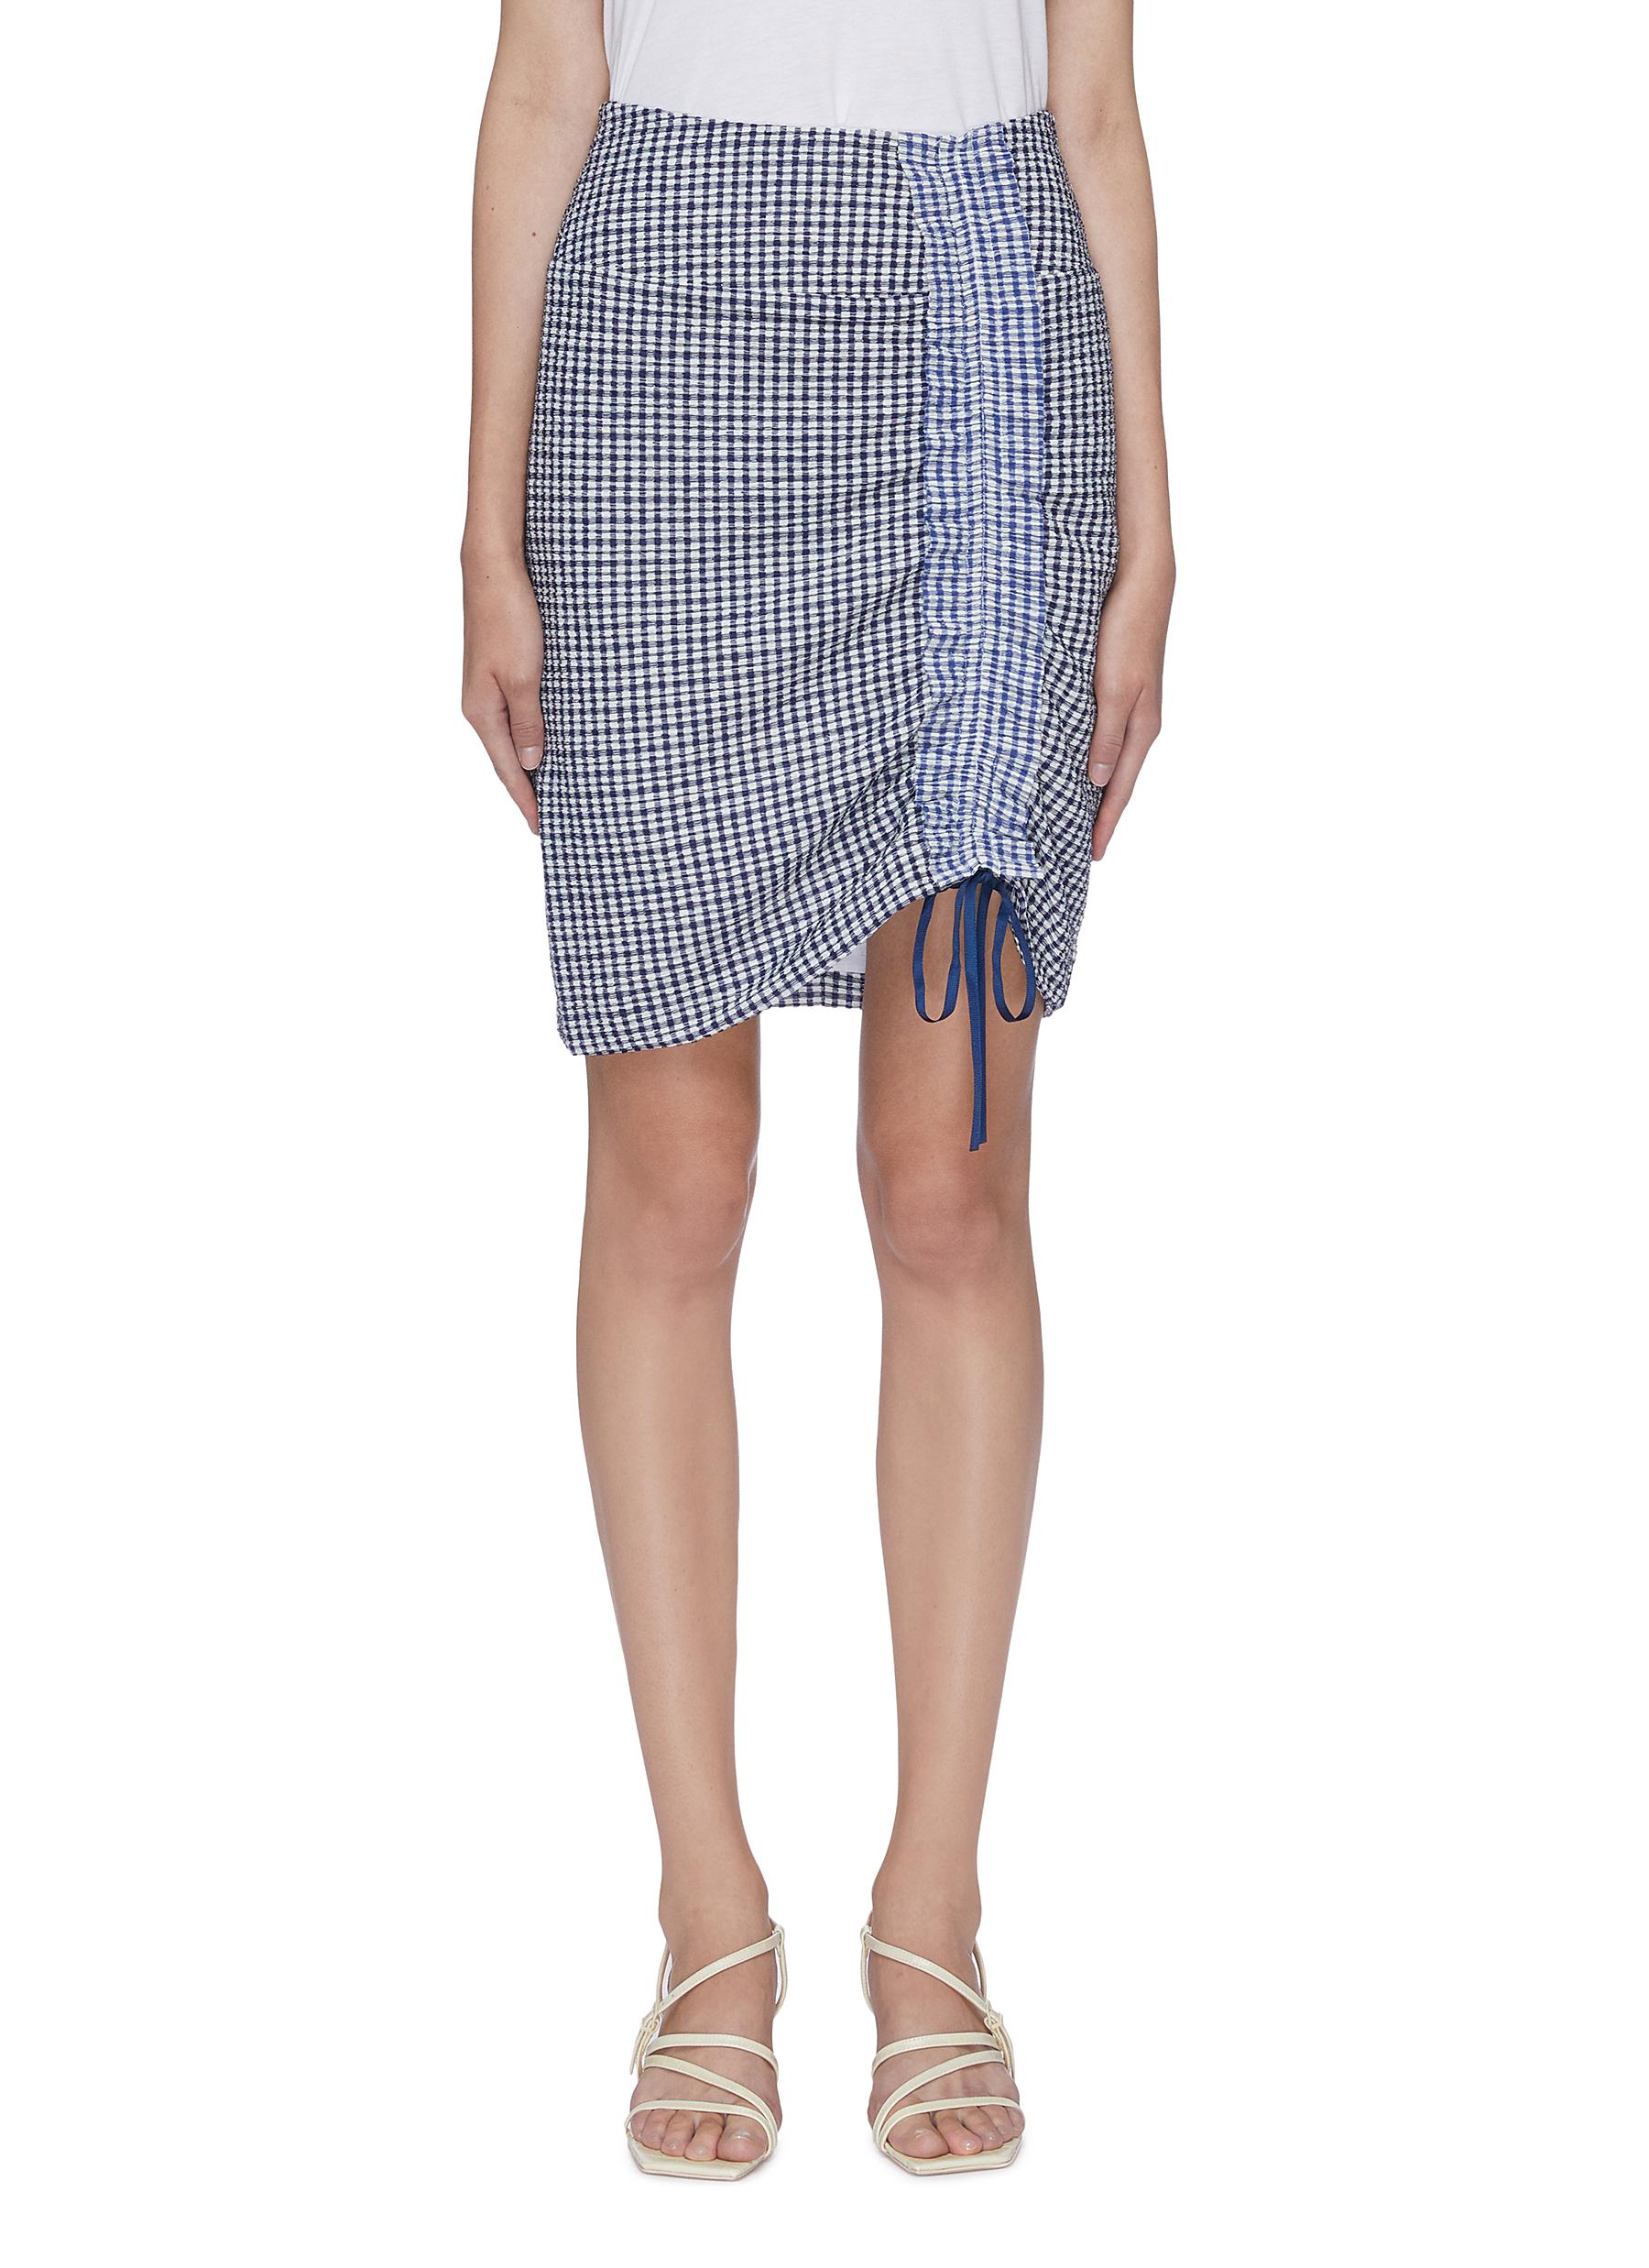 Cello drawstring ruched gingham check skirt by Staud